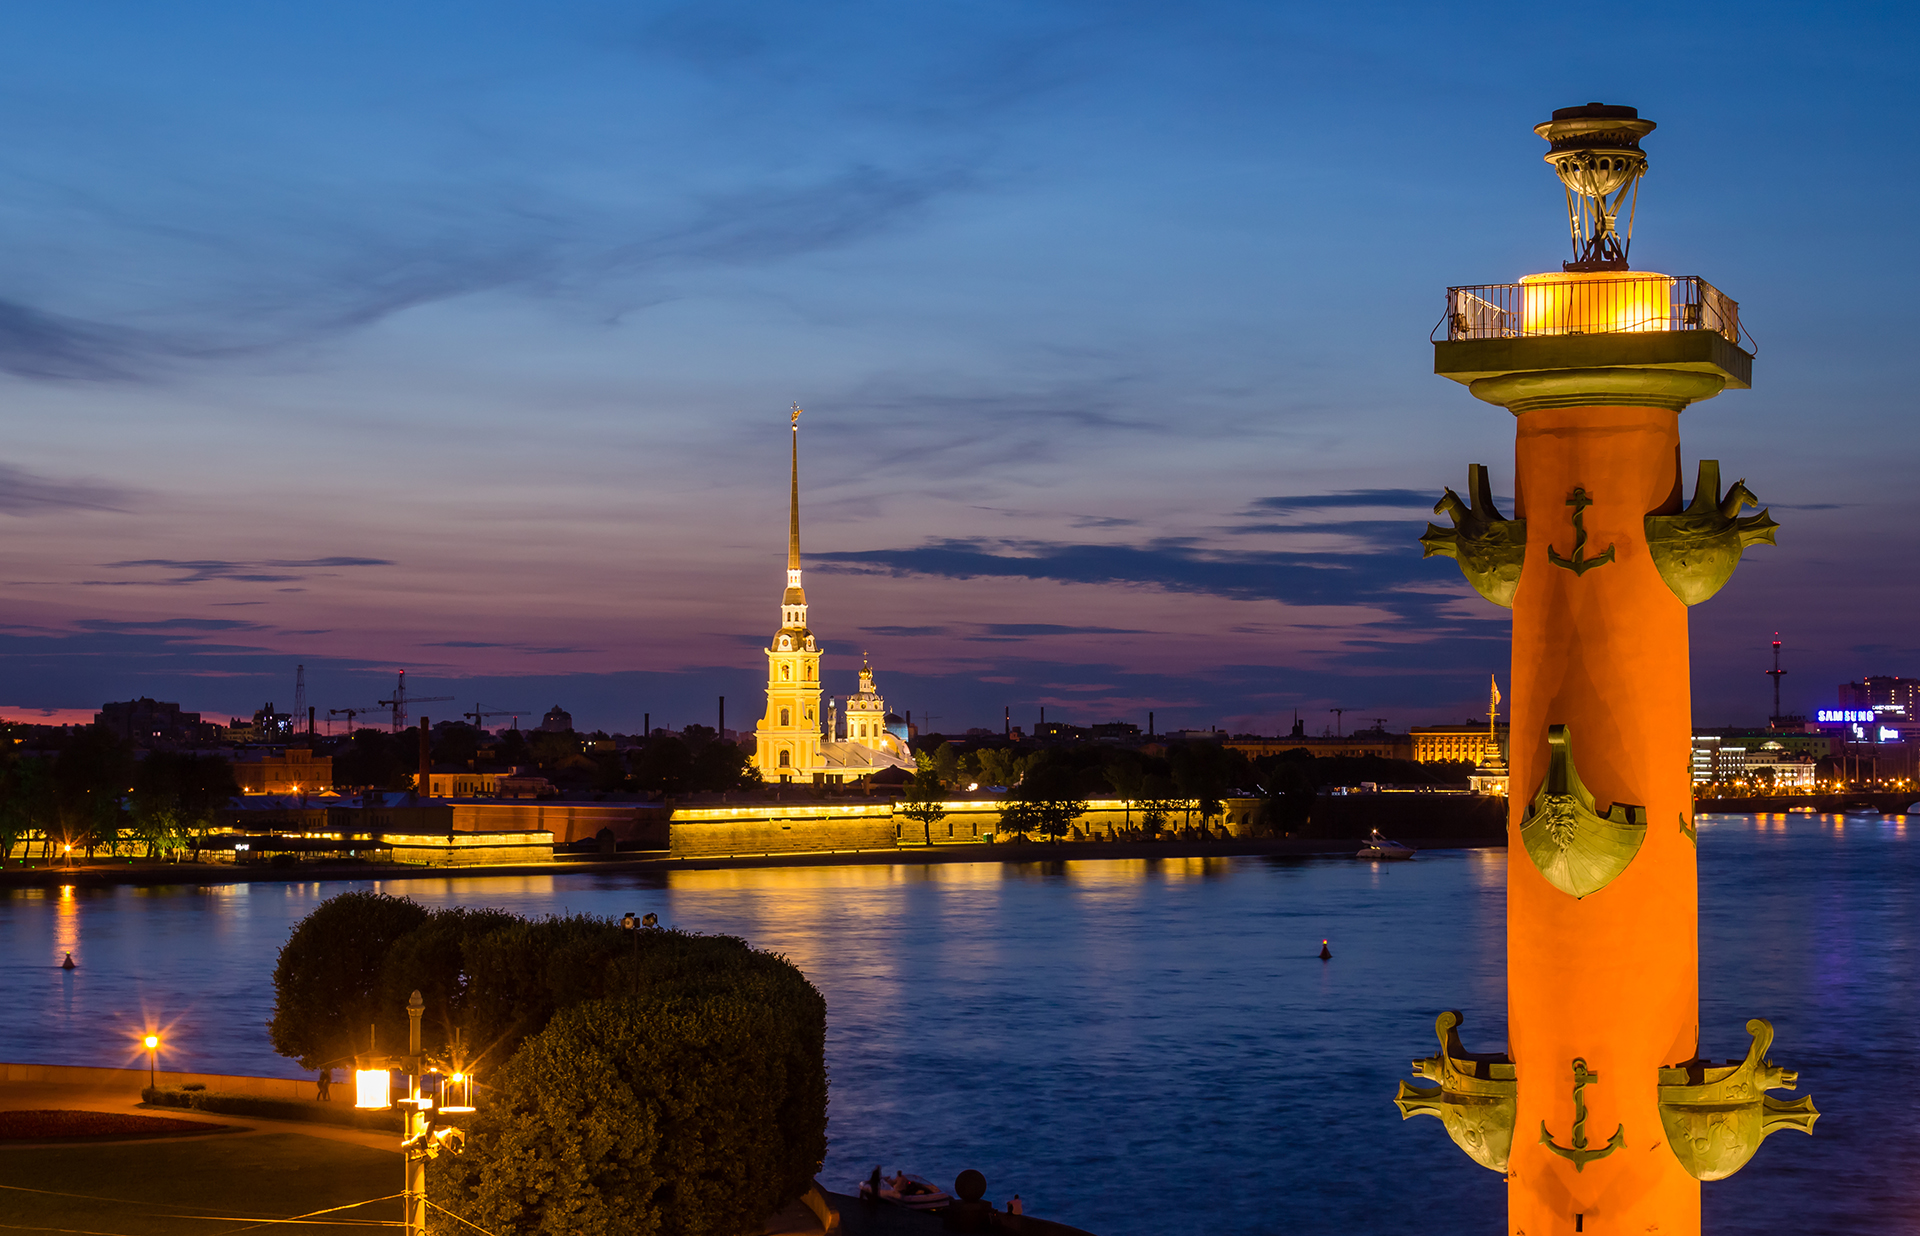 Water, rivers and canals: St. Petersburg is often called the Venice of the North, because it is situated on about 40 islands. Peter the Great, the founder of the city, forbade the building of bridges in the very beginning and wanted everyone to get around by boat.